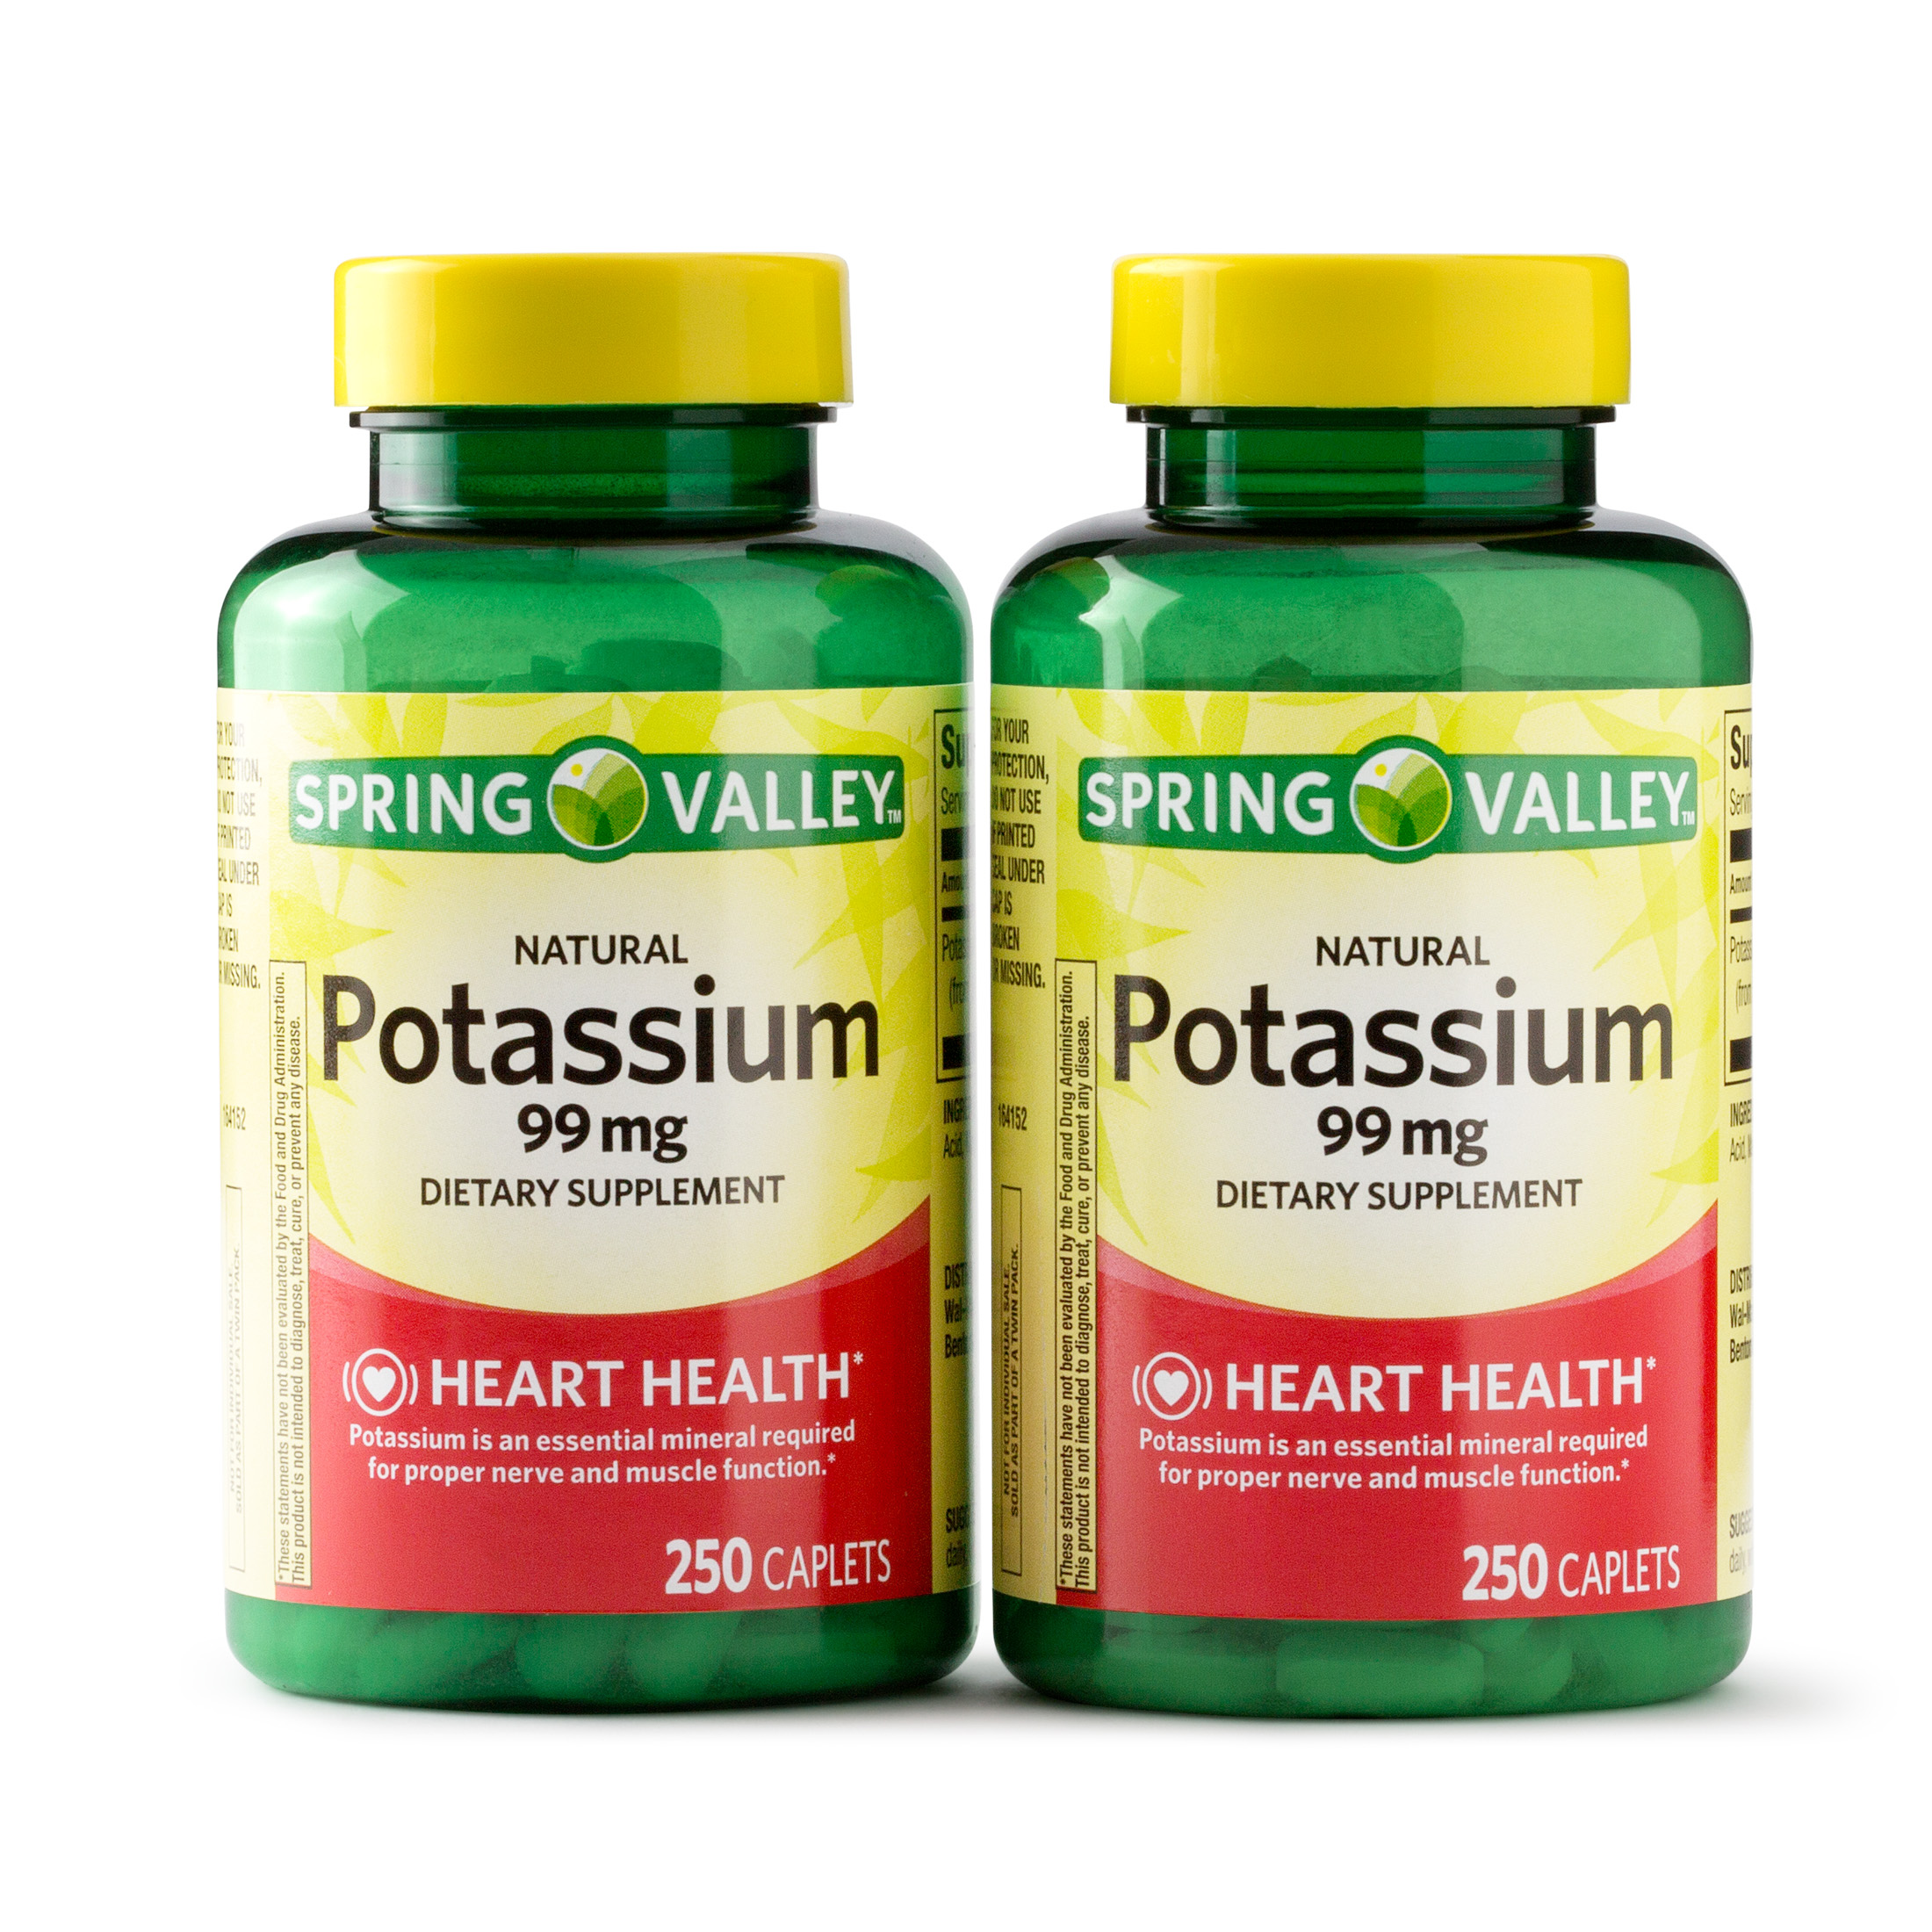 Spring Valley Potassium Caplets, 99 mg, 250 Ct, 2 Pk